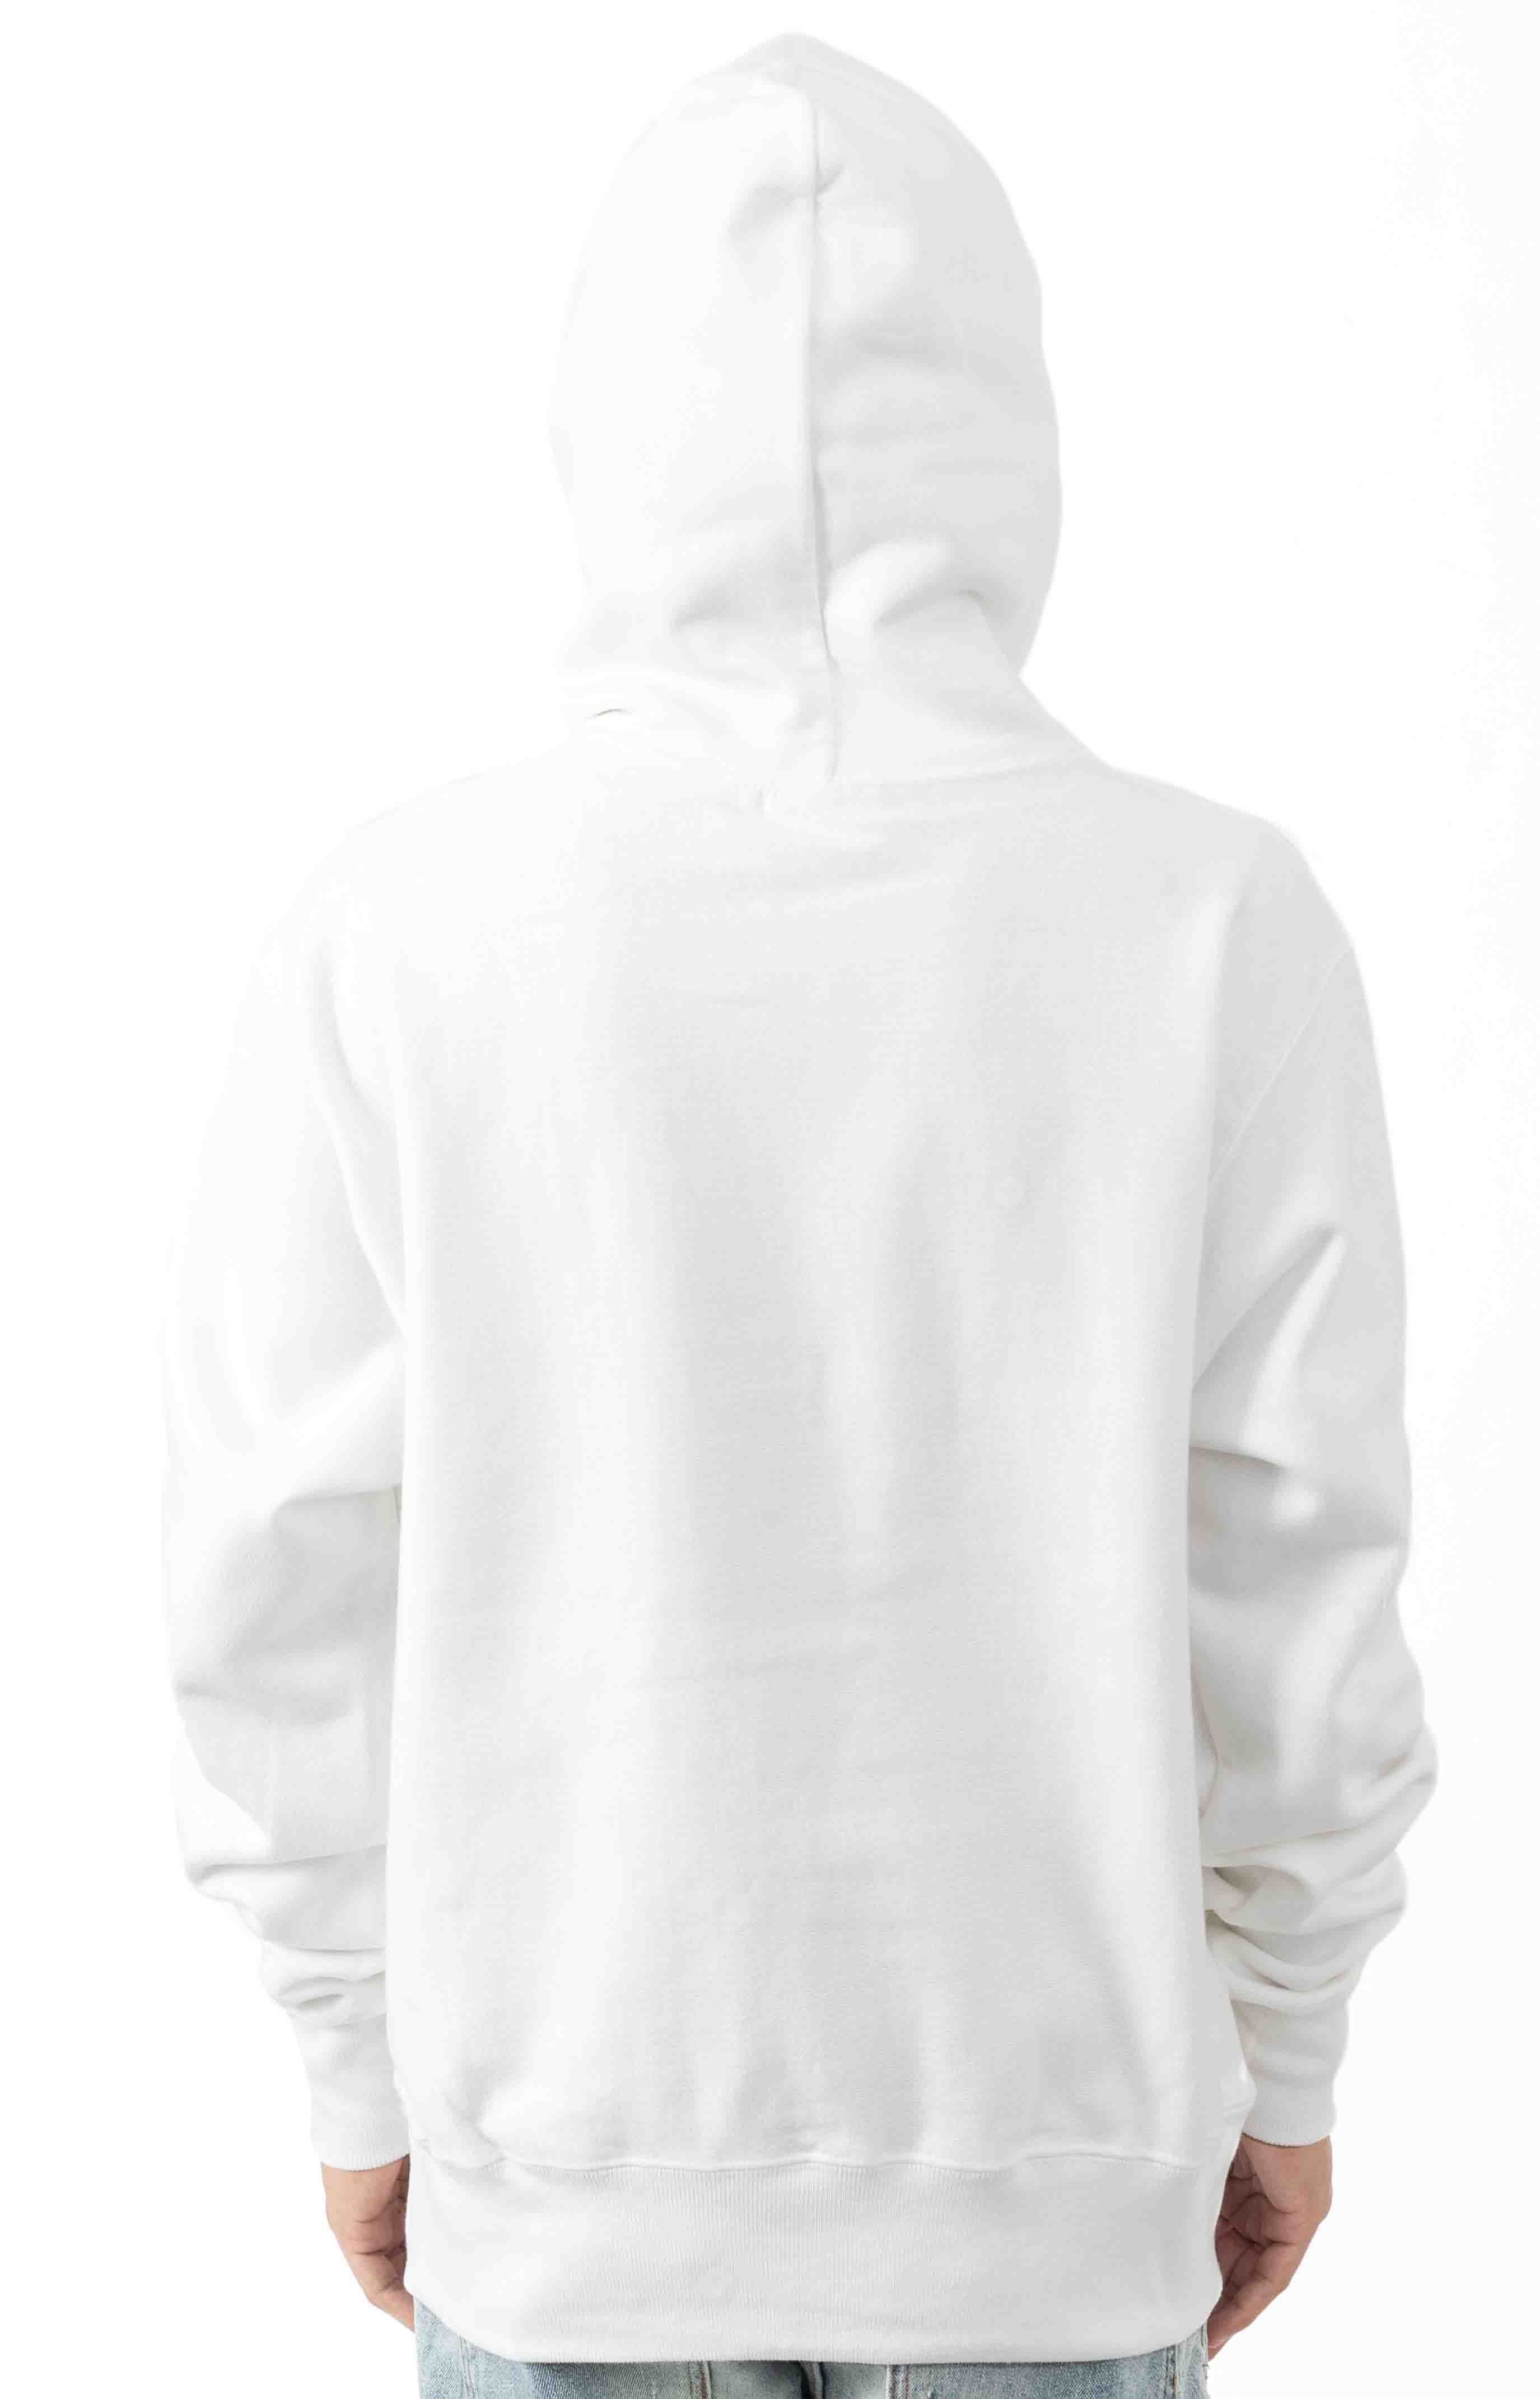 Reflective Logo Pullover Hoodie - White  3